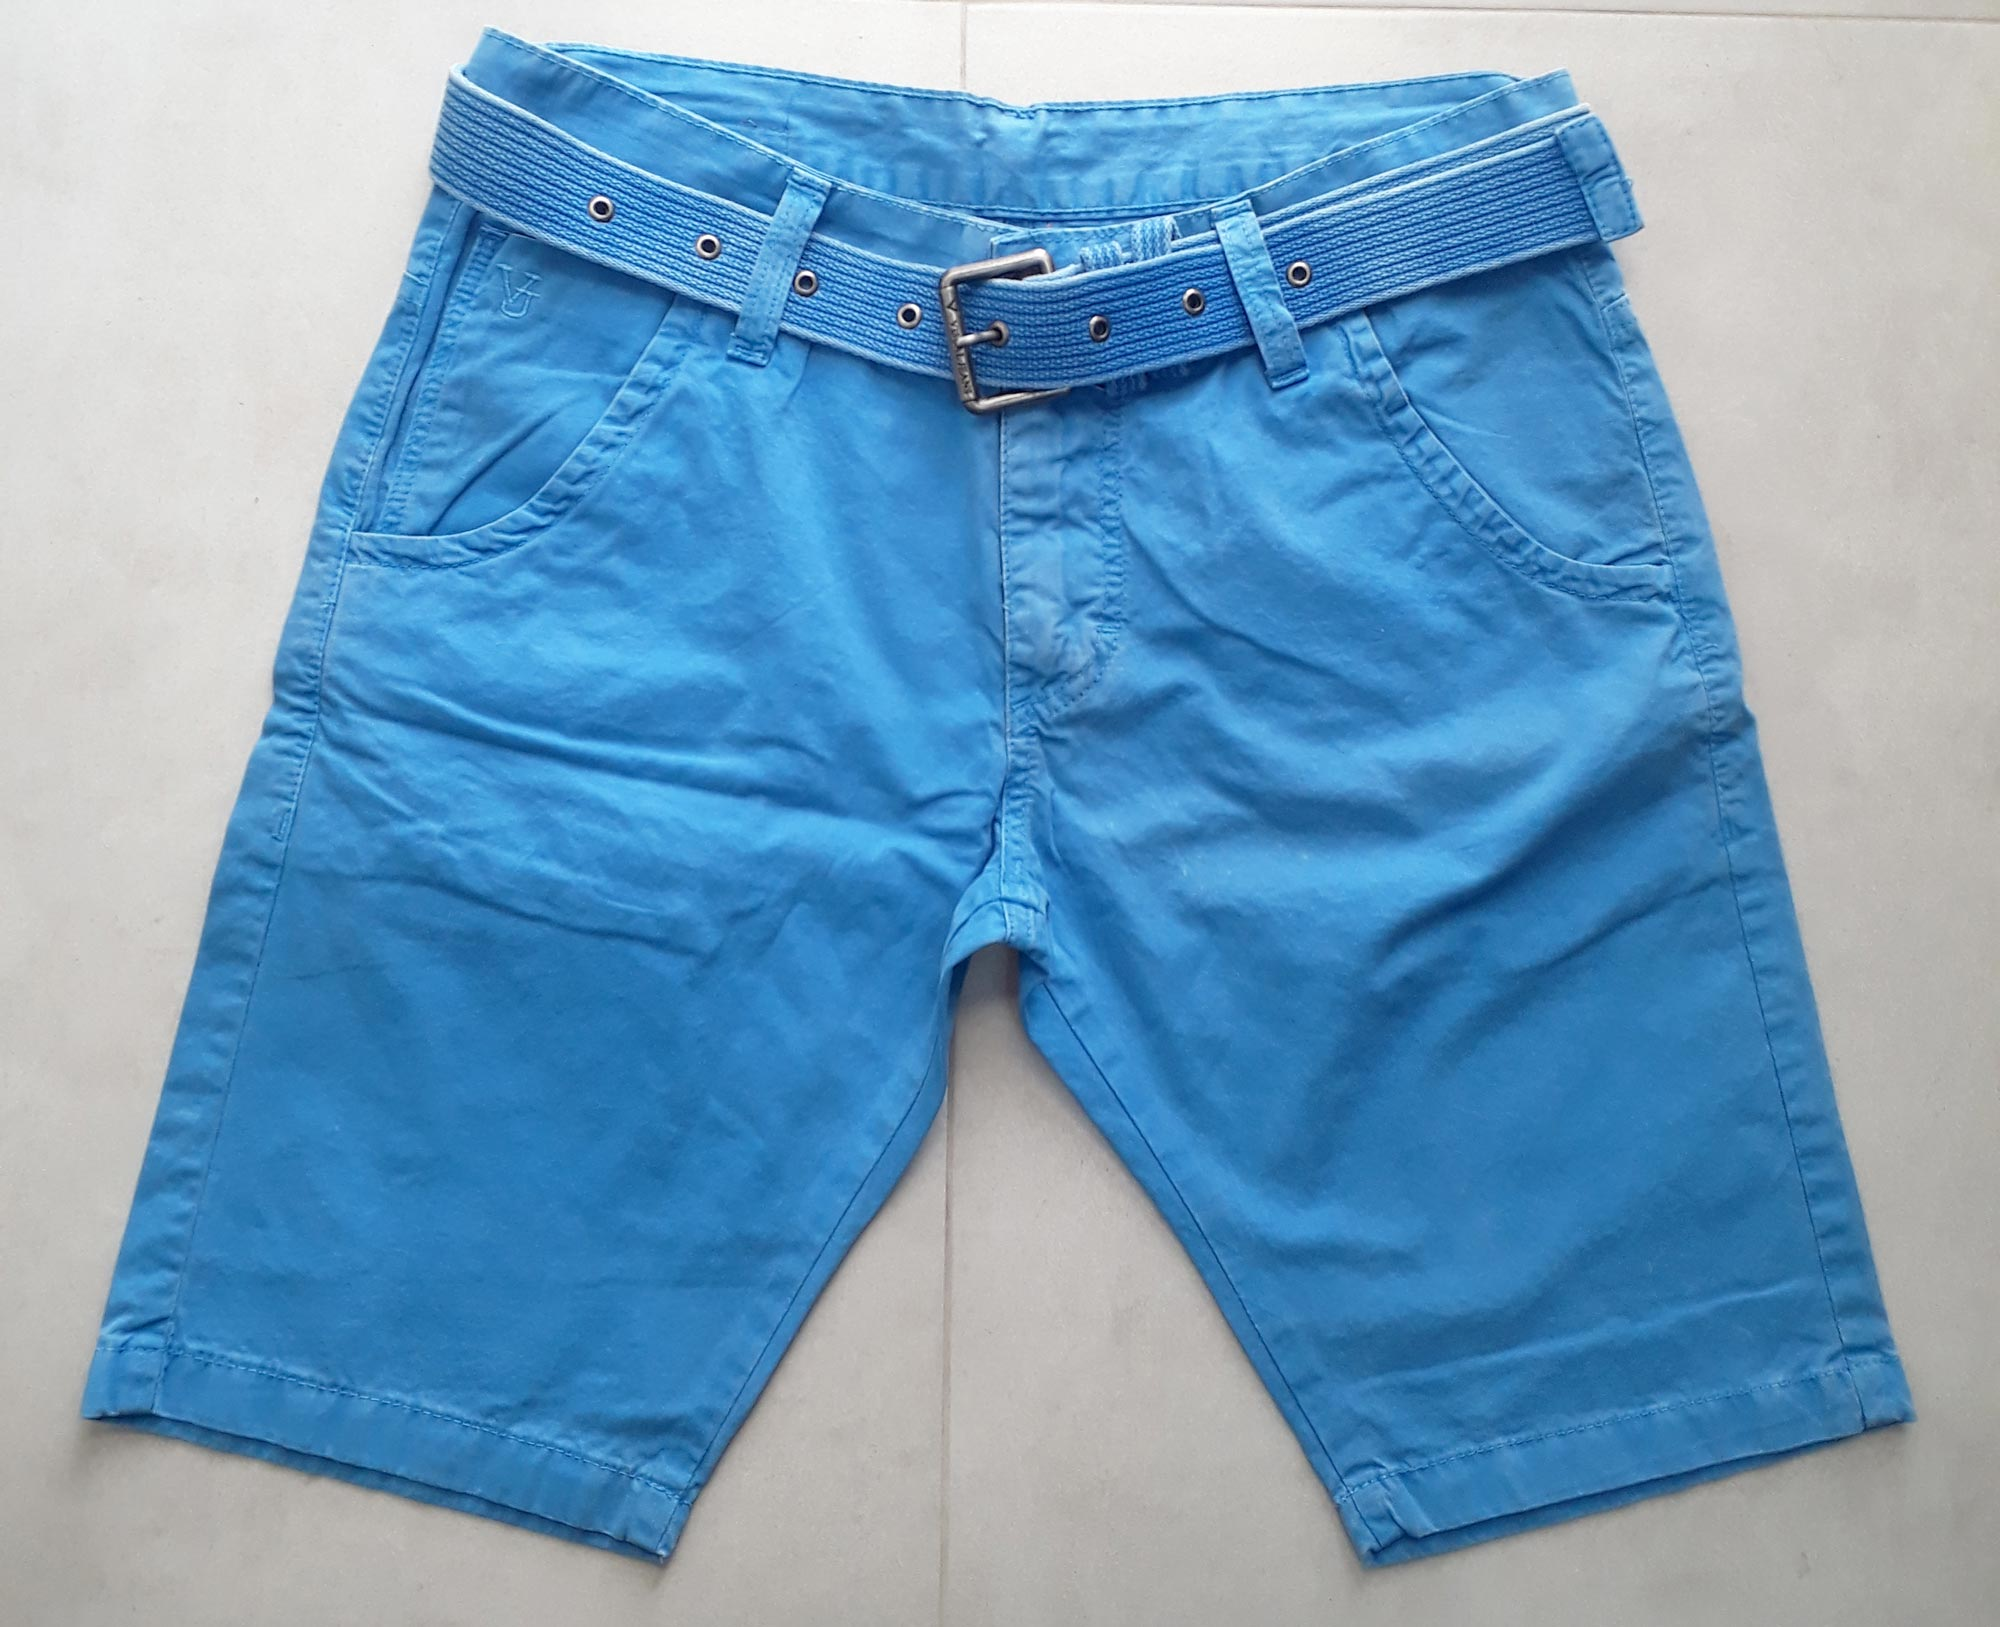 Bermuda Walk Visual Jeans Azul - 36